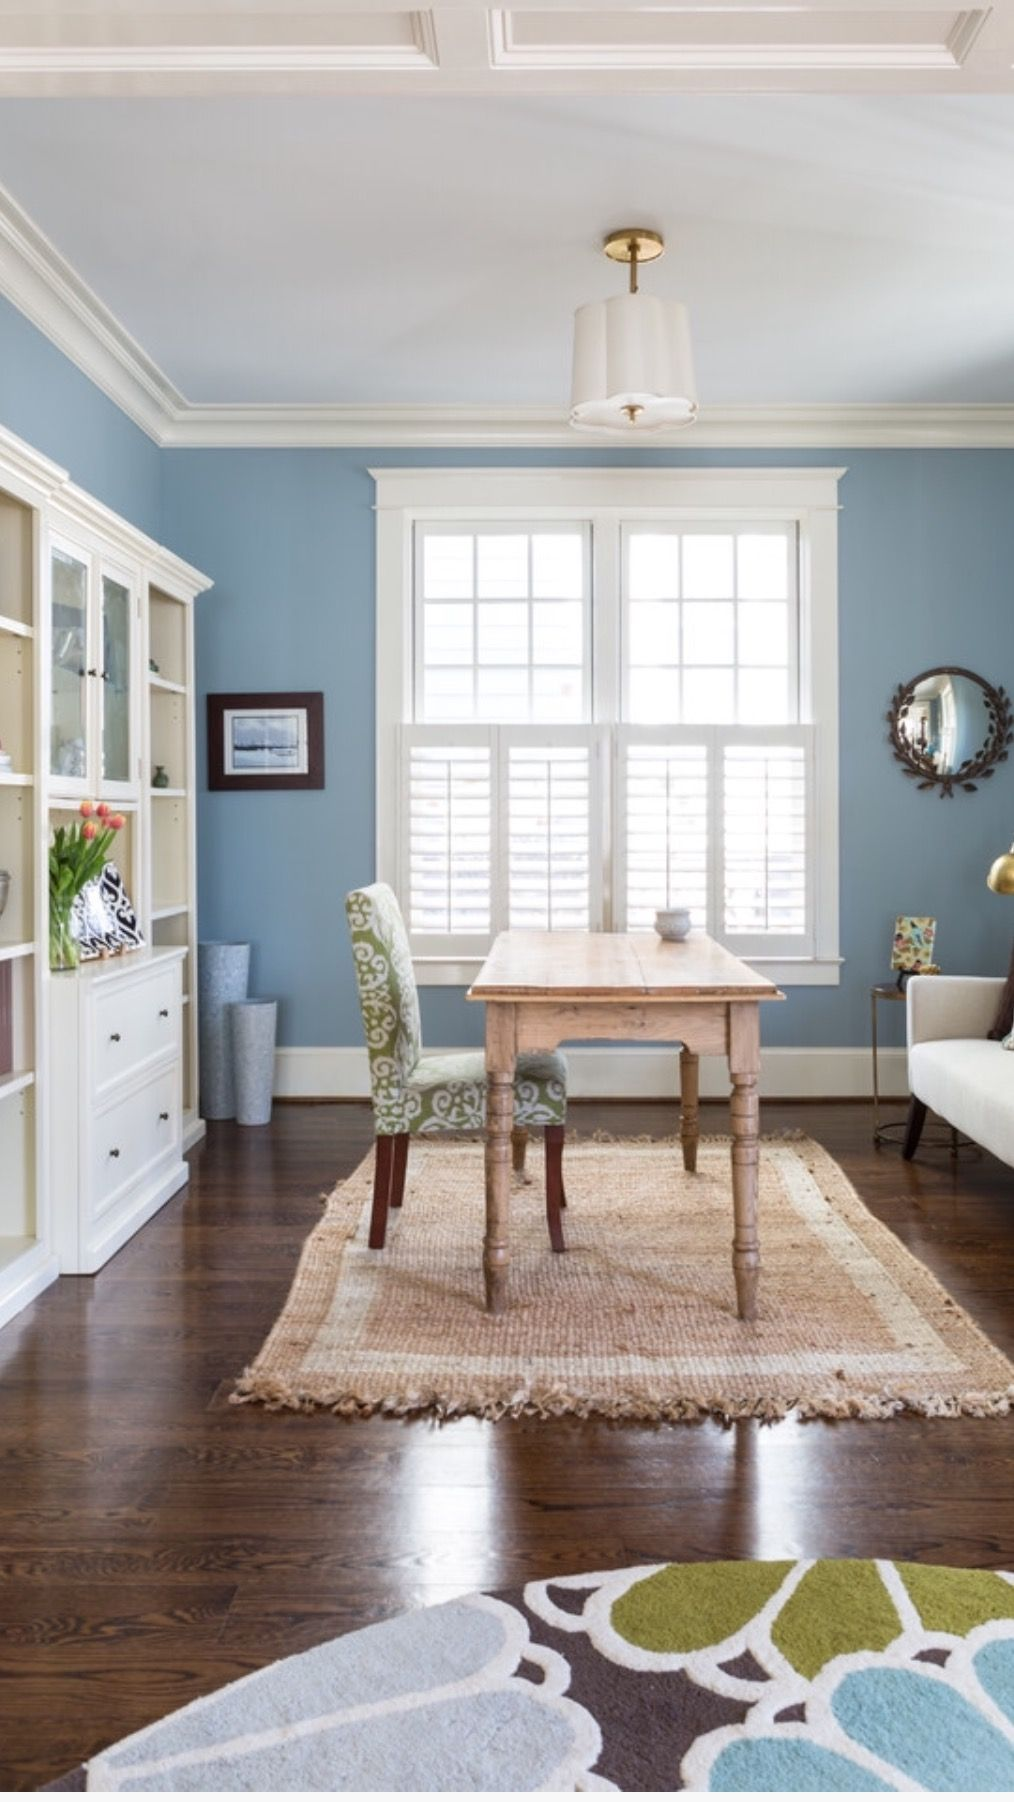 Wall Color Santorini Blue By Benjamin Moore. Room Designed By Liza  Holder/Homegrown Decor